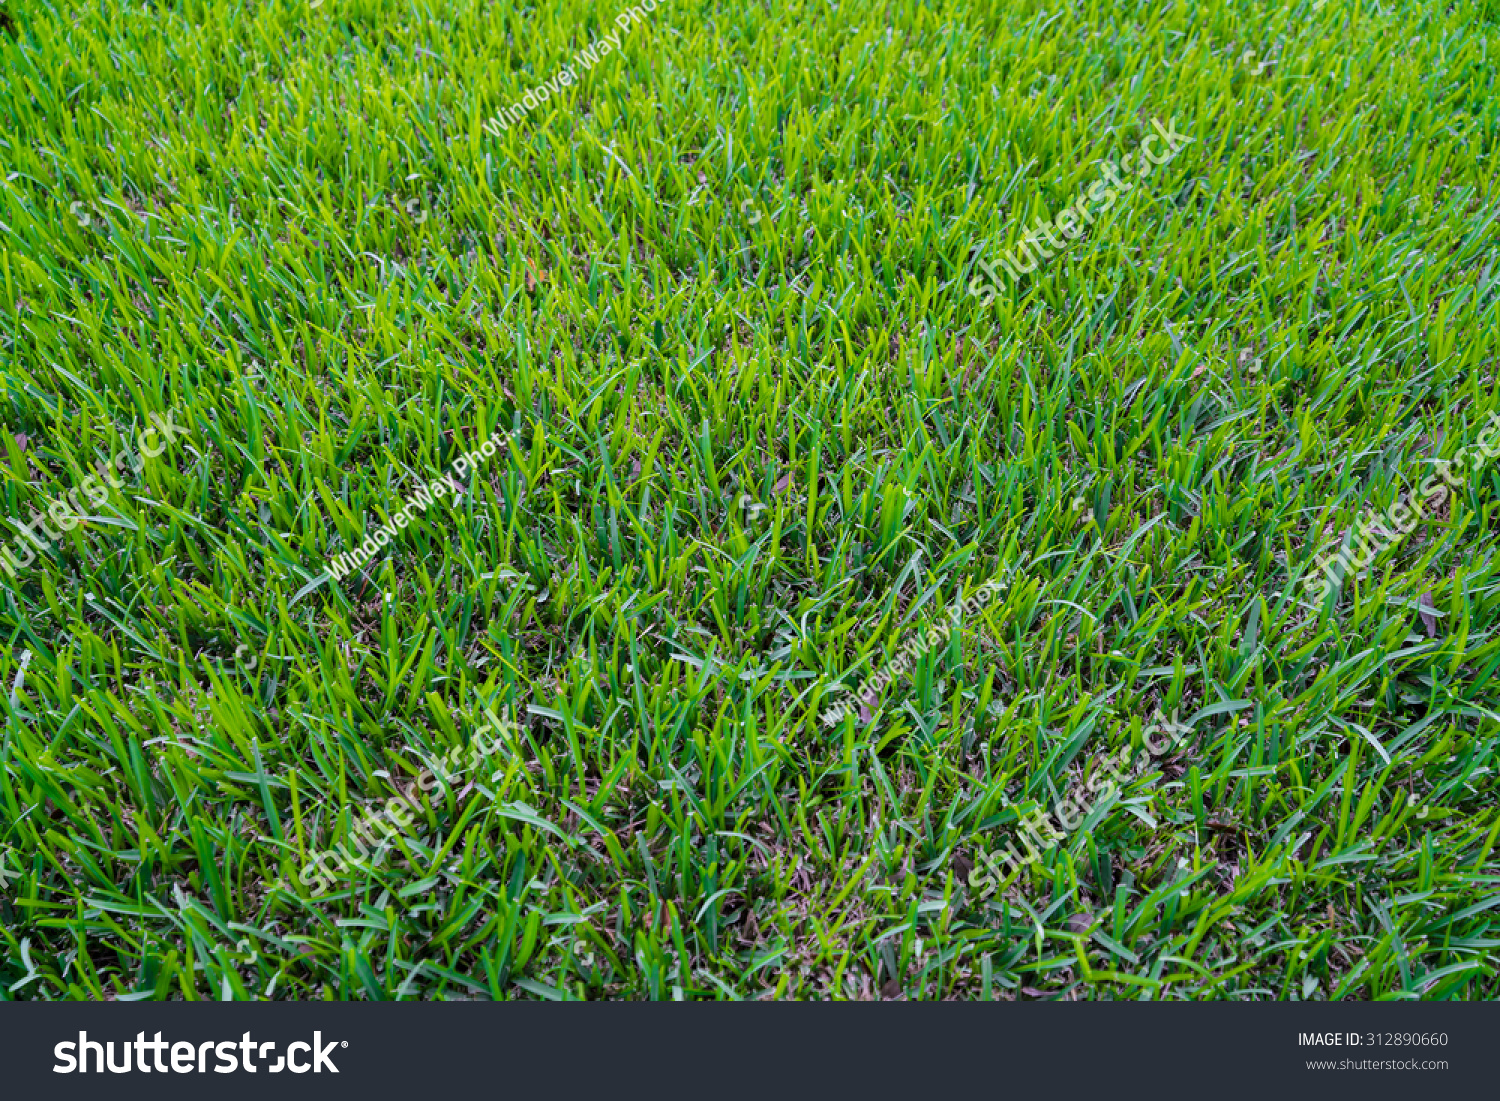 Green St Augustine Grass Stock Photo (Edit Now) 312890660